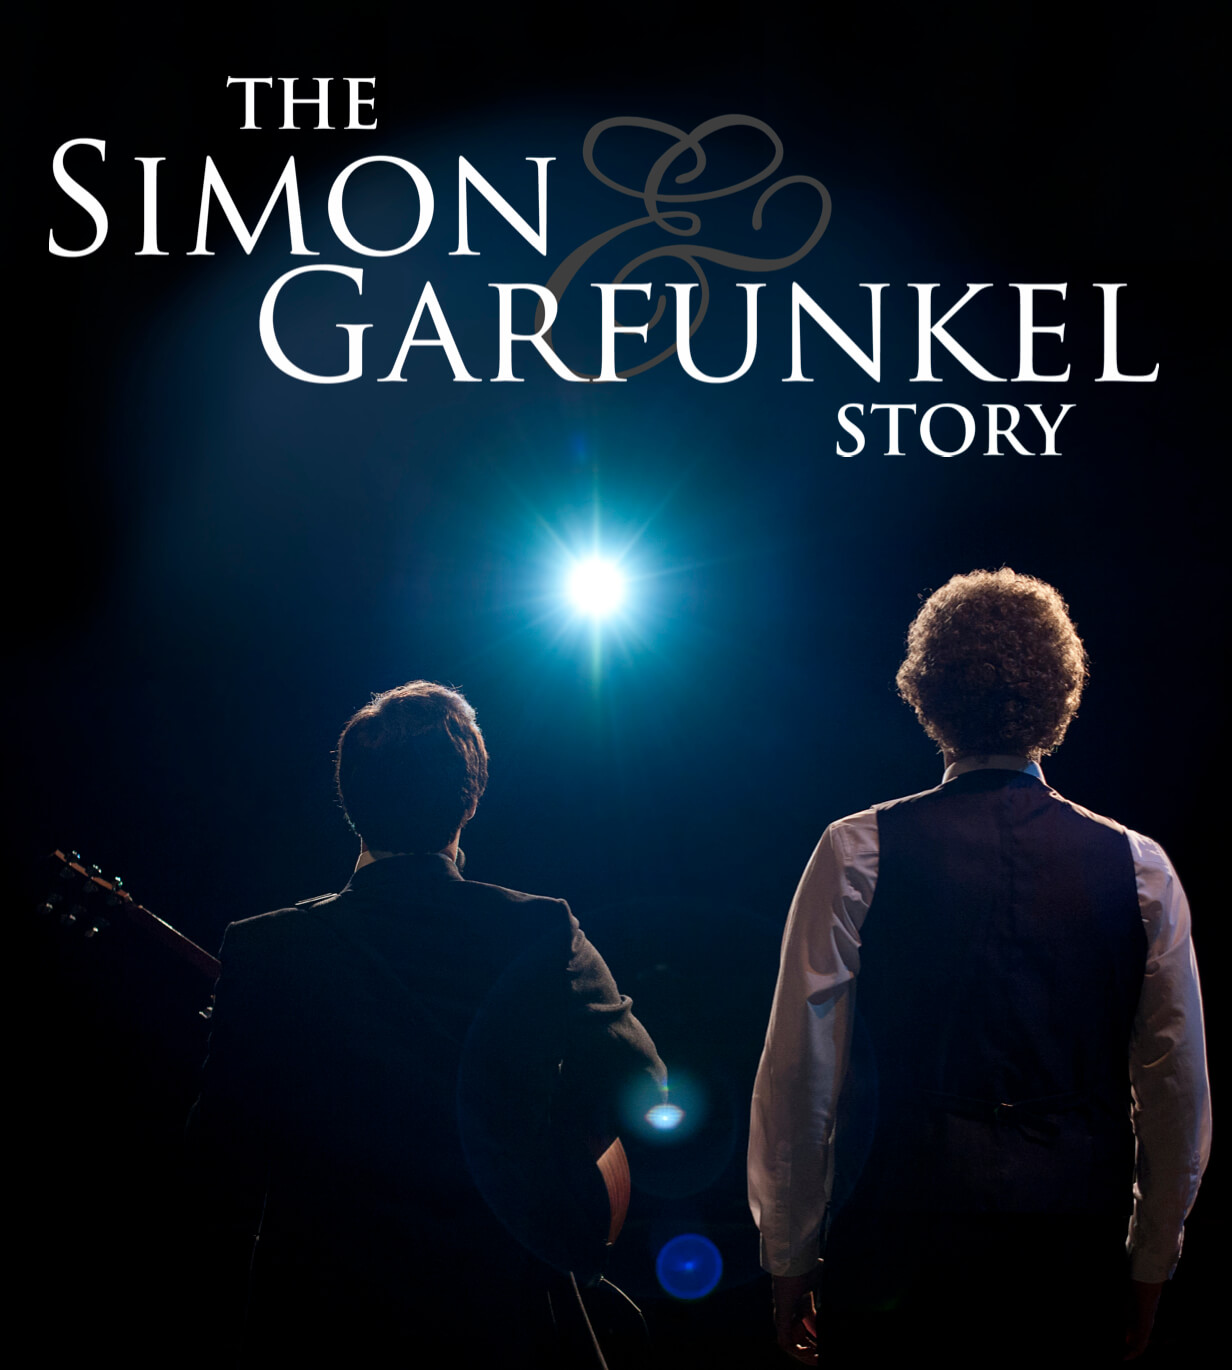 The Simon and Garfunkel Story (